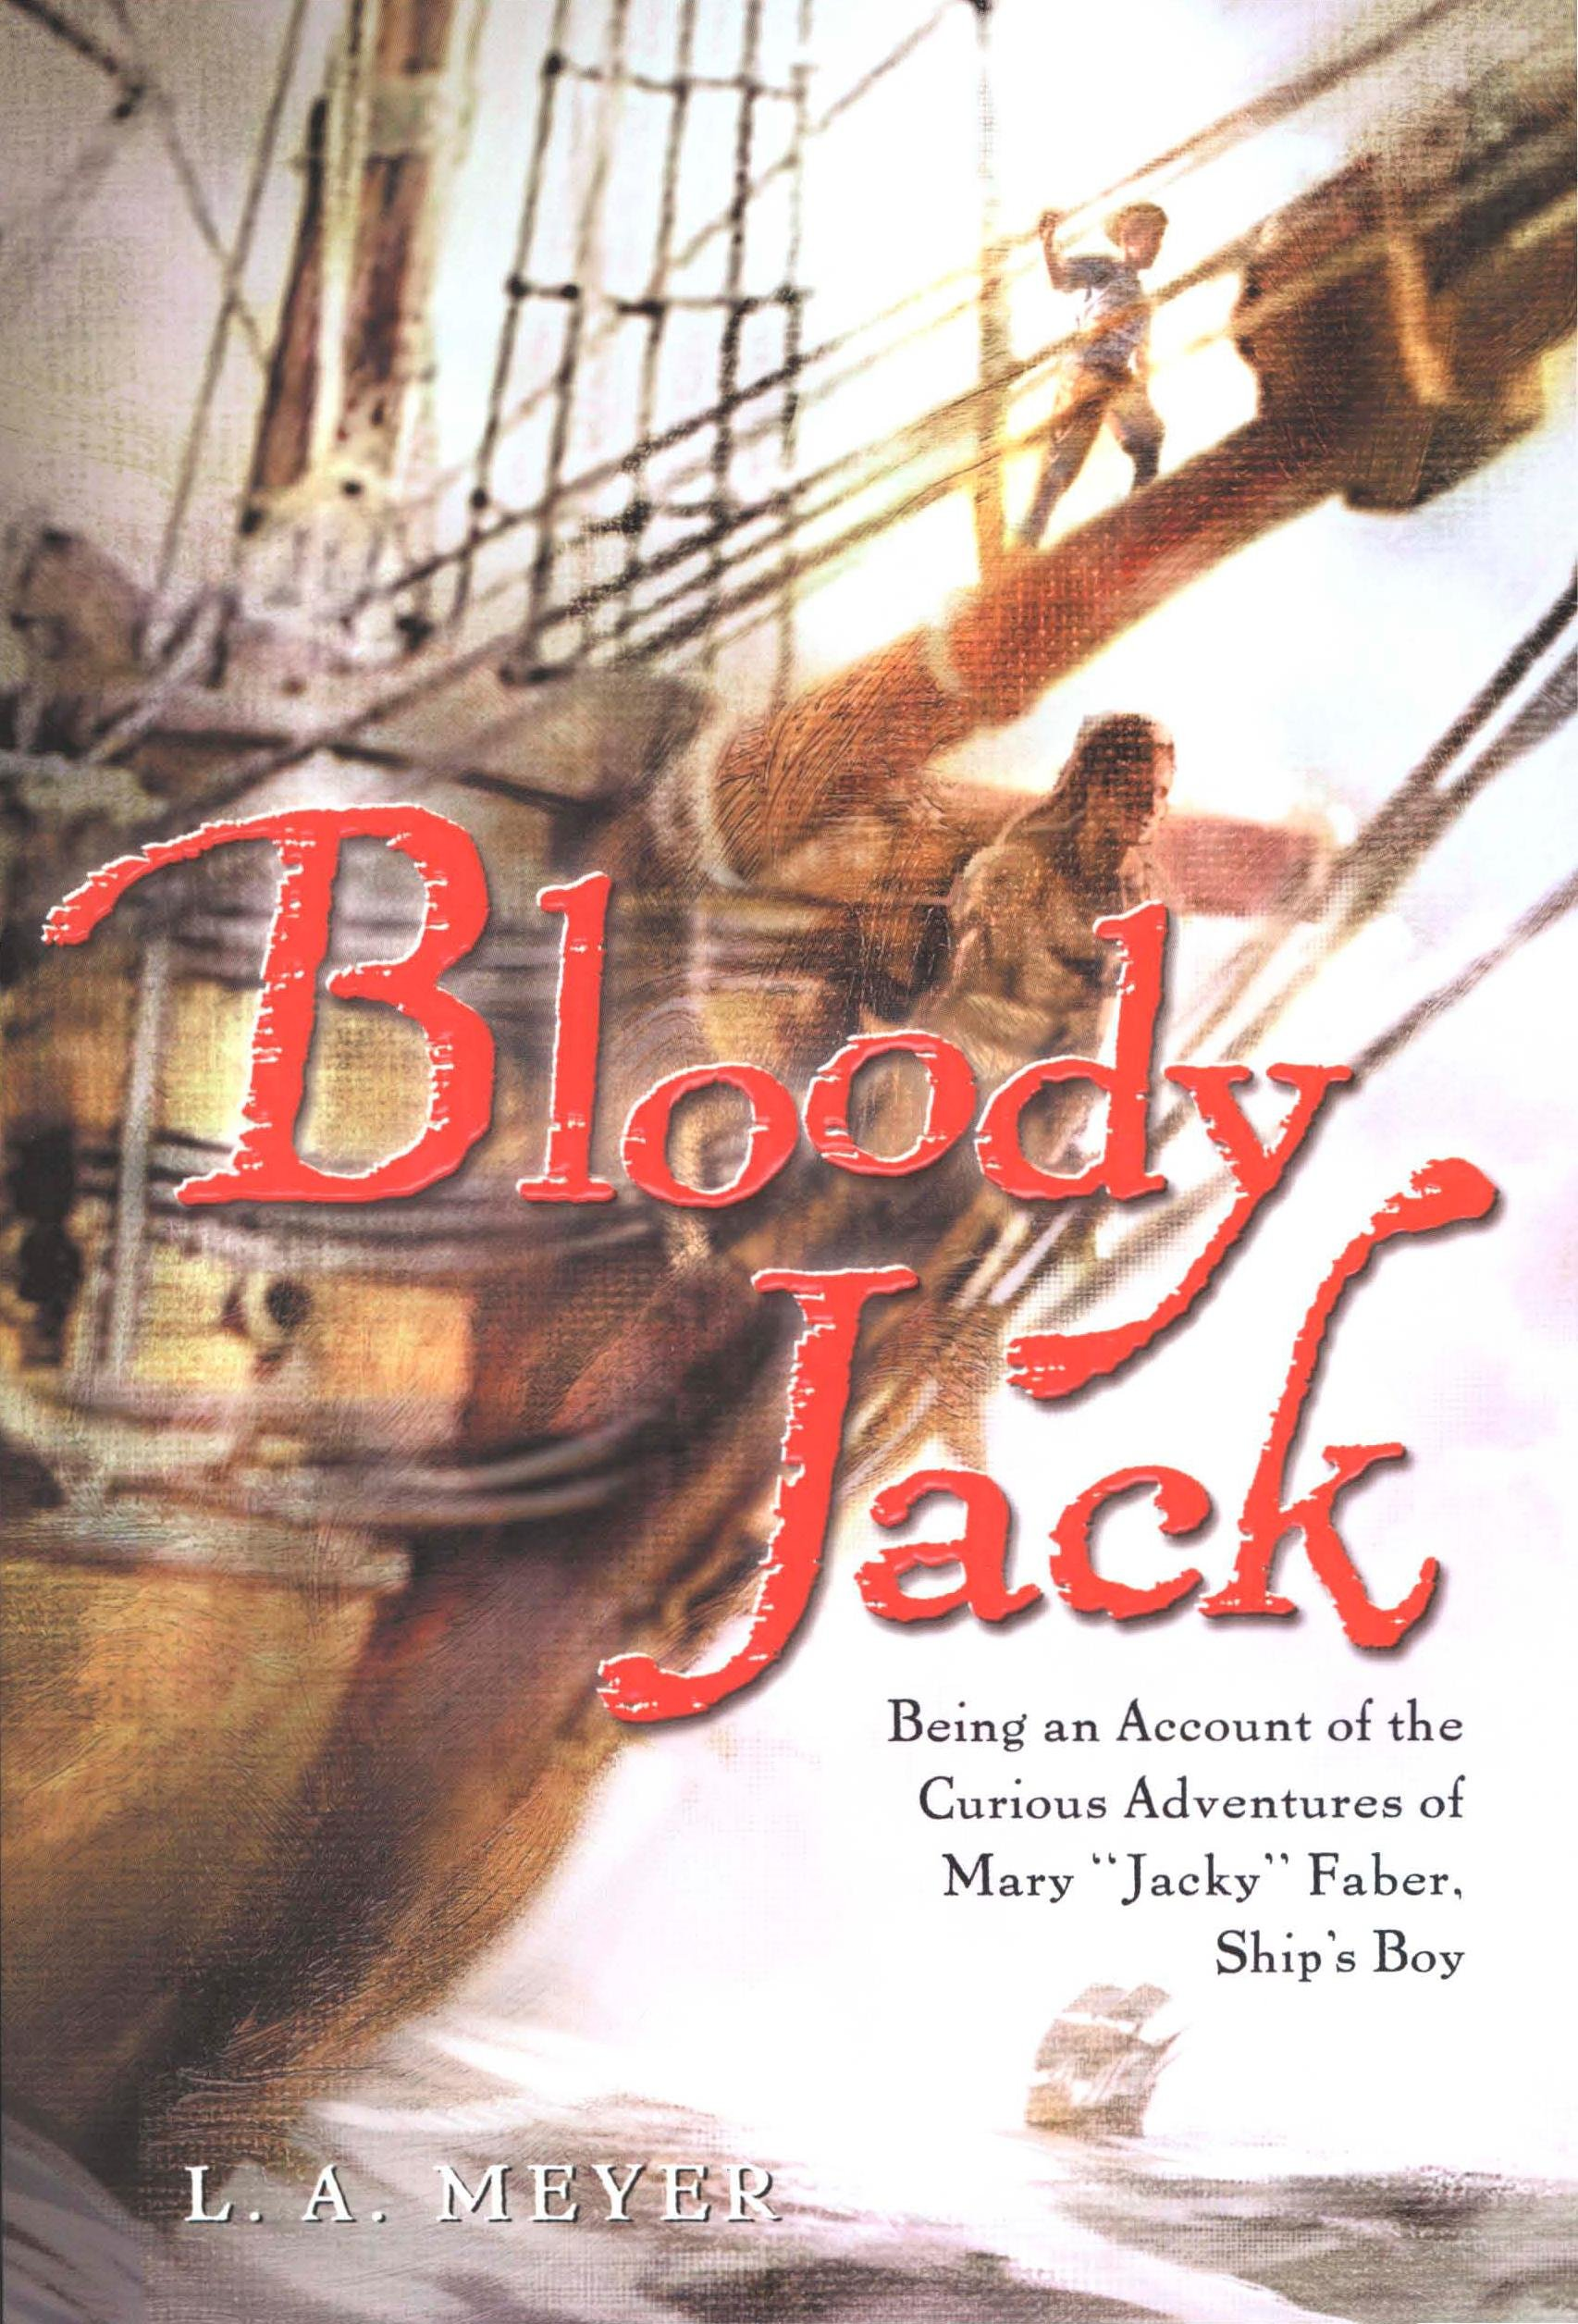 Kids on Fire: Tweens Will Want To Join Girl Pirate Bloody Jack On High Seas Adventures